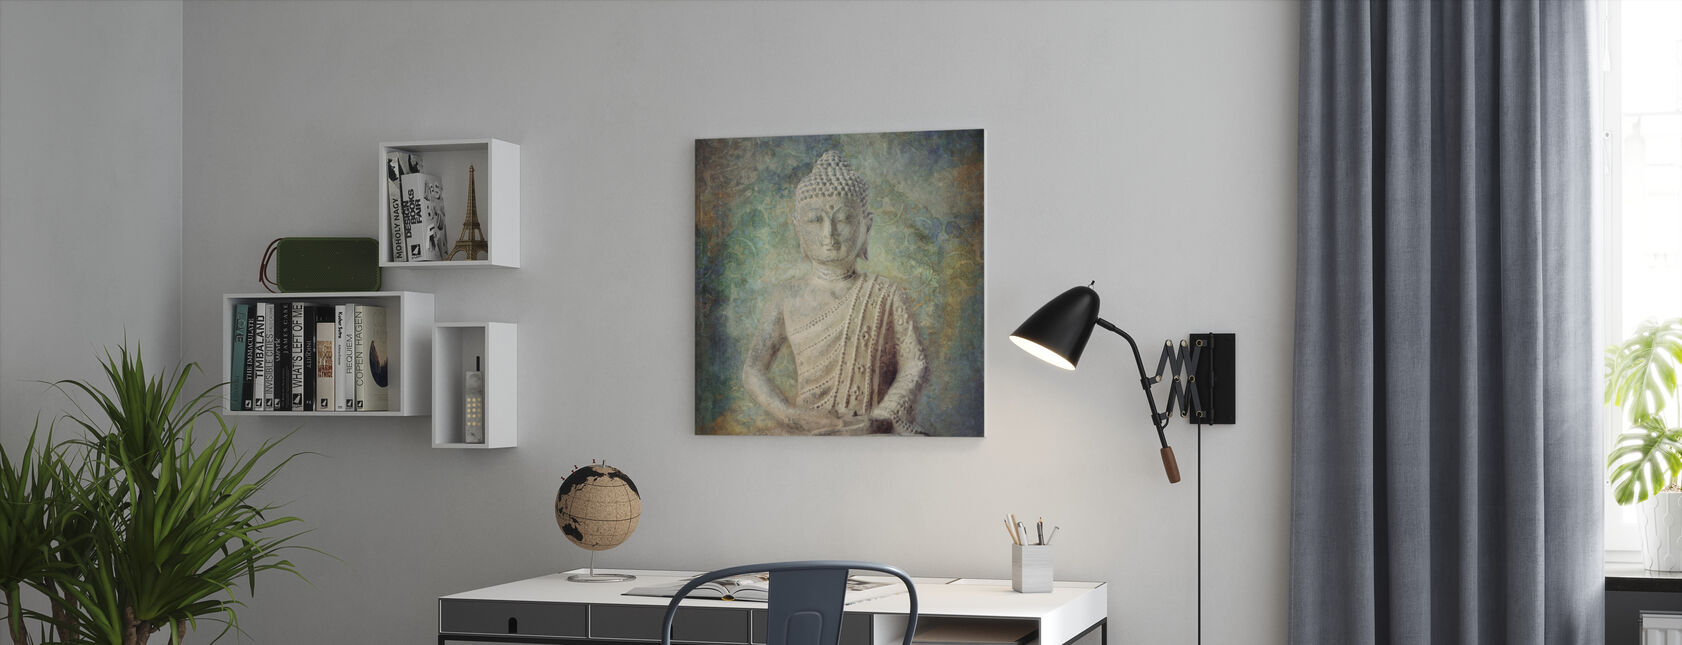 Tranquil Buddha Squared - Canvas print - Office